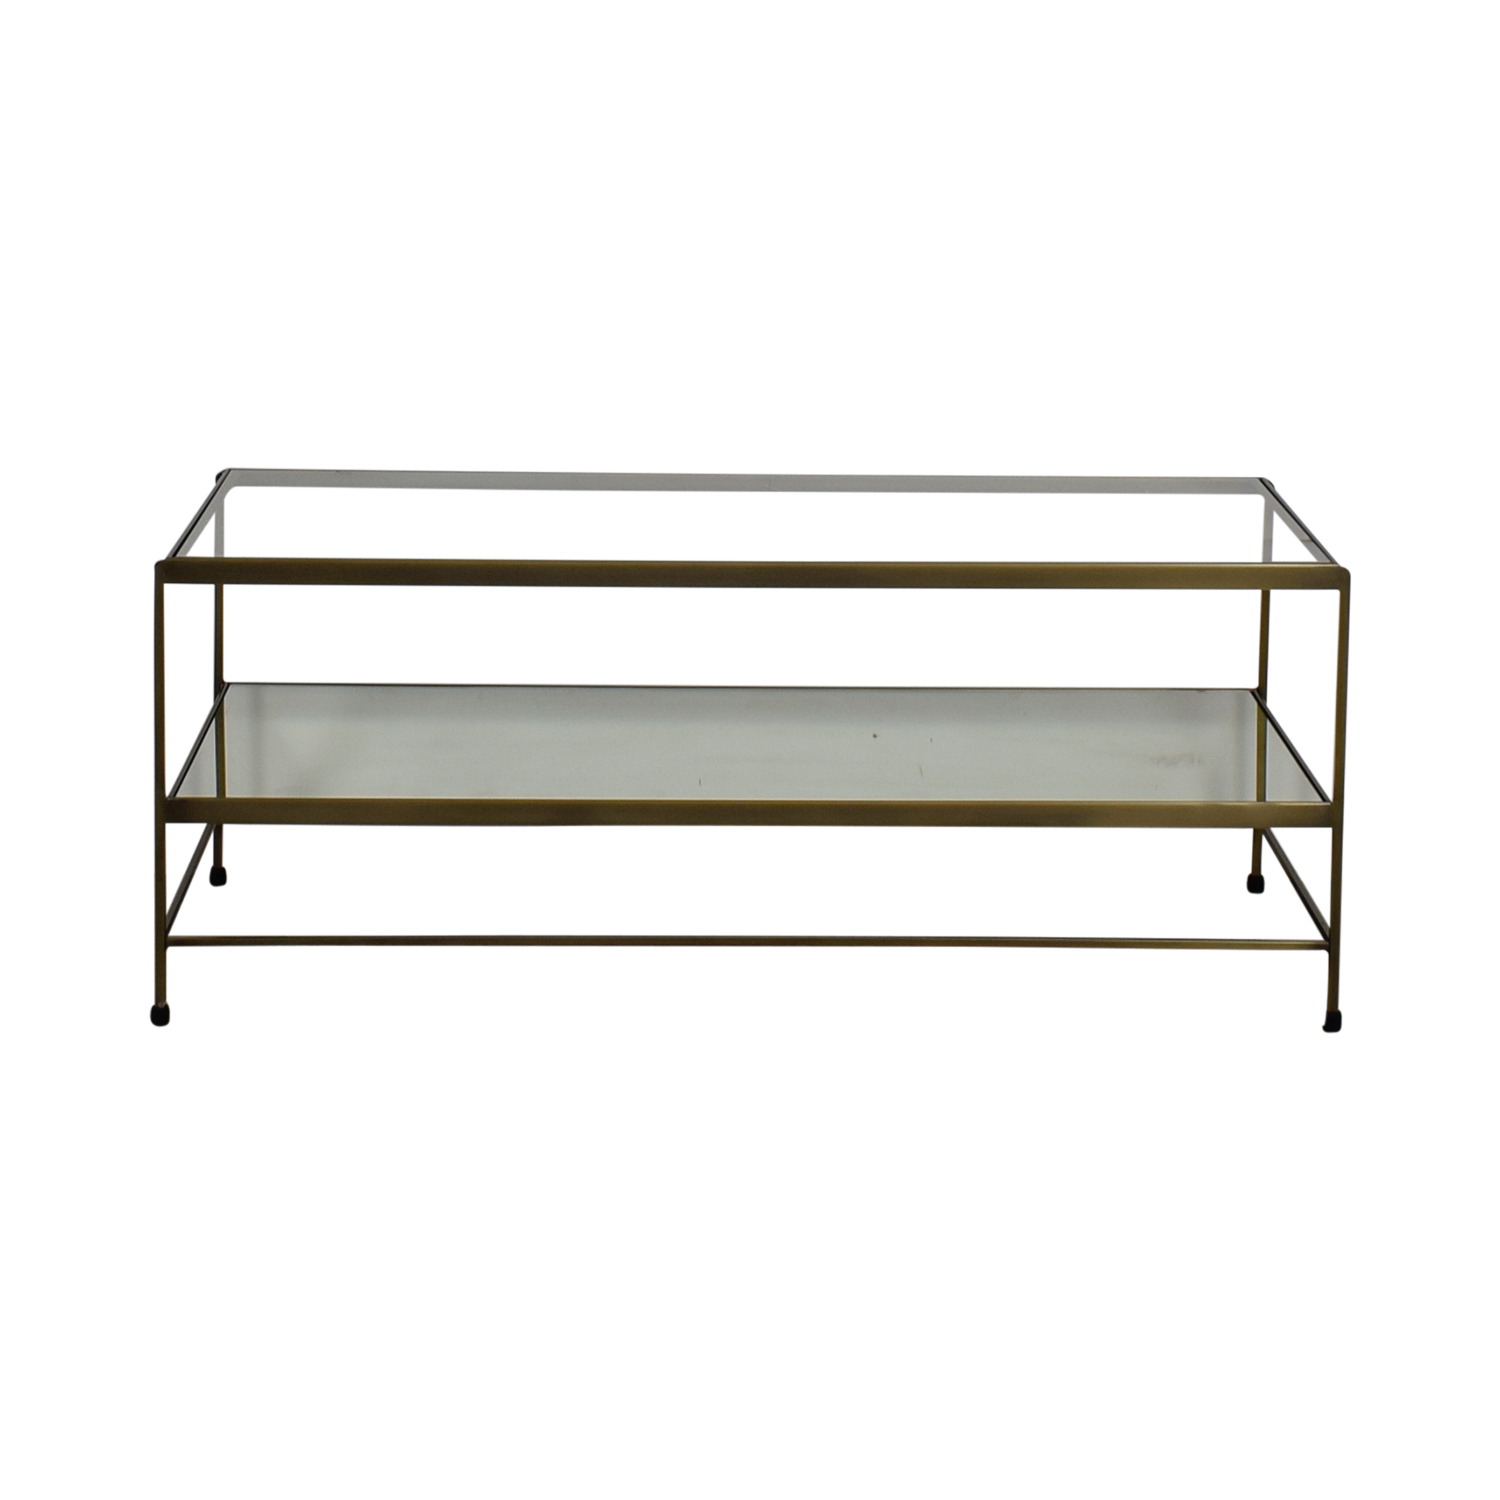 Pottery Barn Leona Metal Rectangular Coffee Table Brass / Sofas